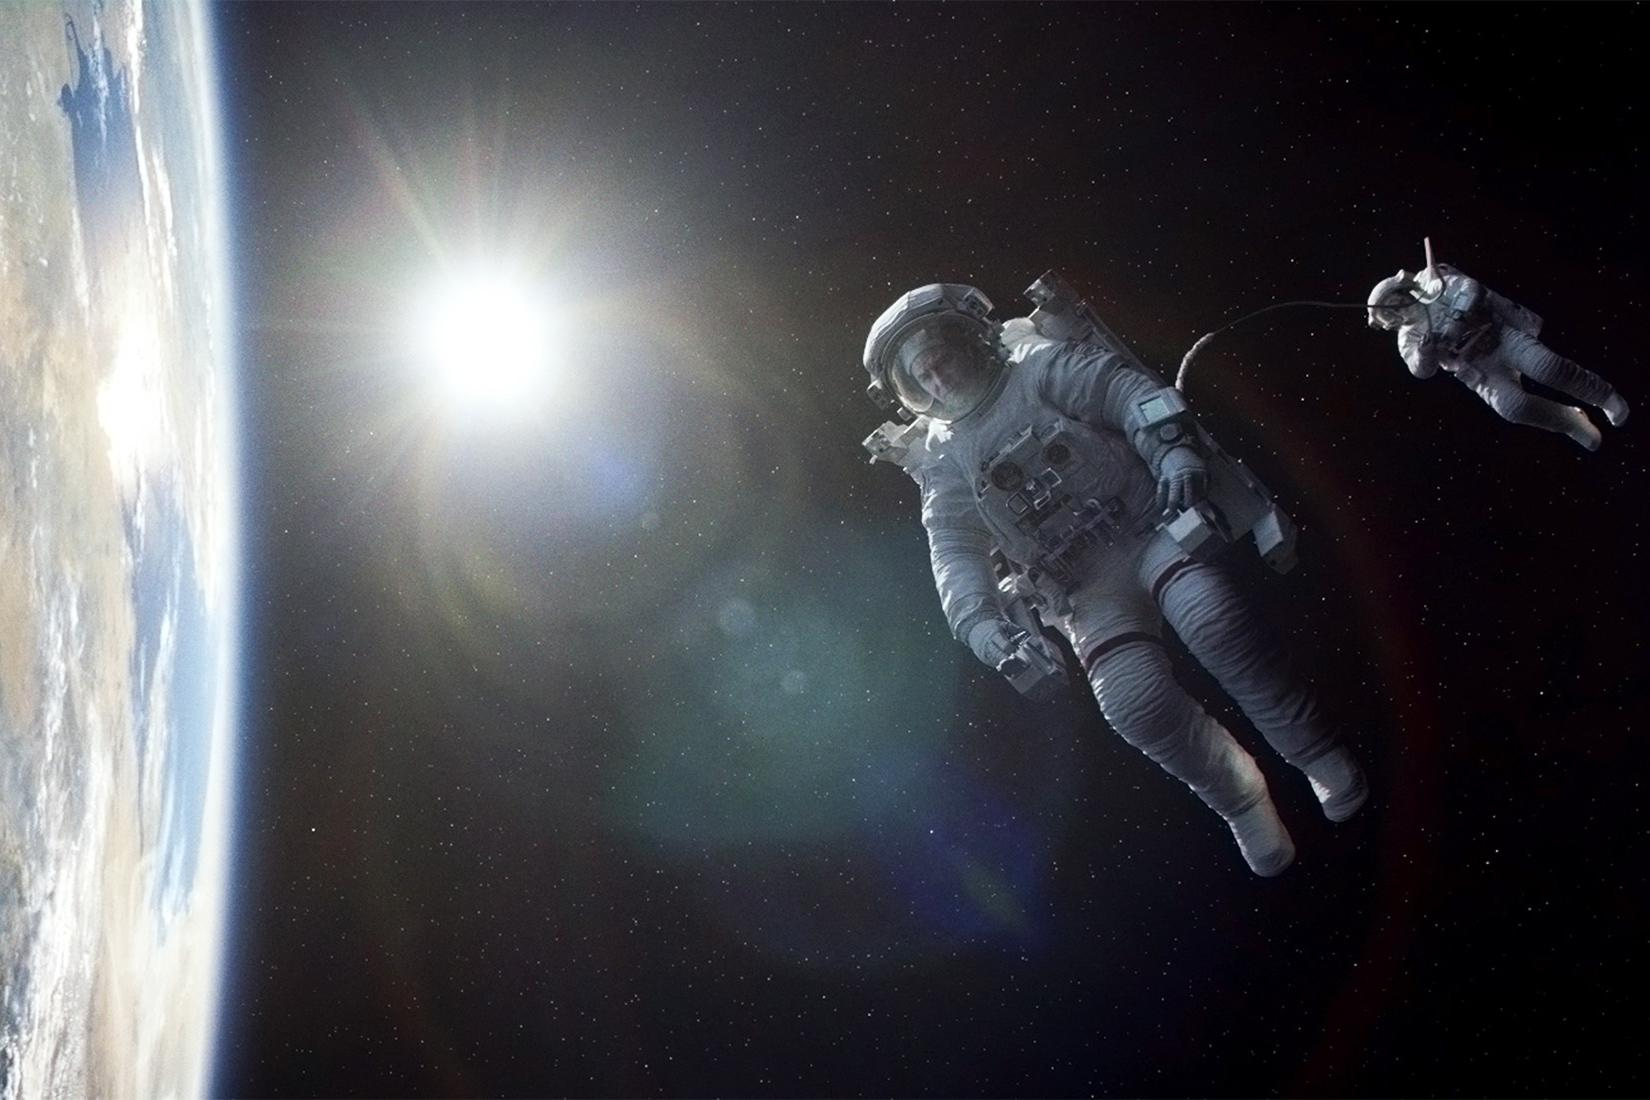 gravity-movie-review-space-earth.jpg